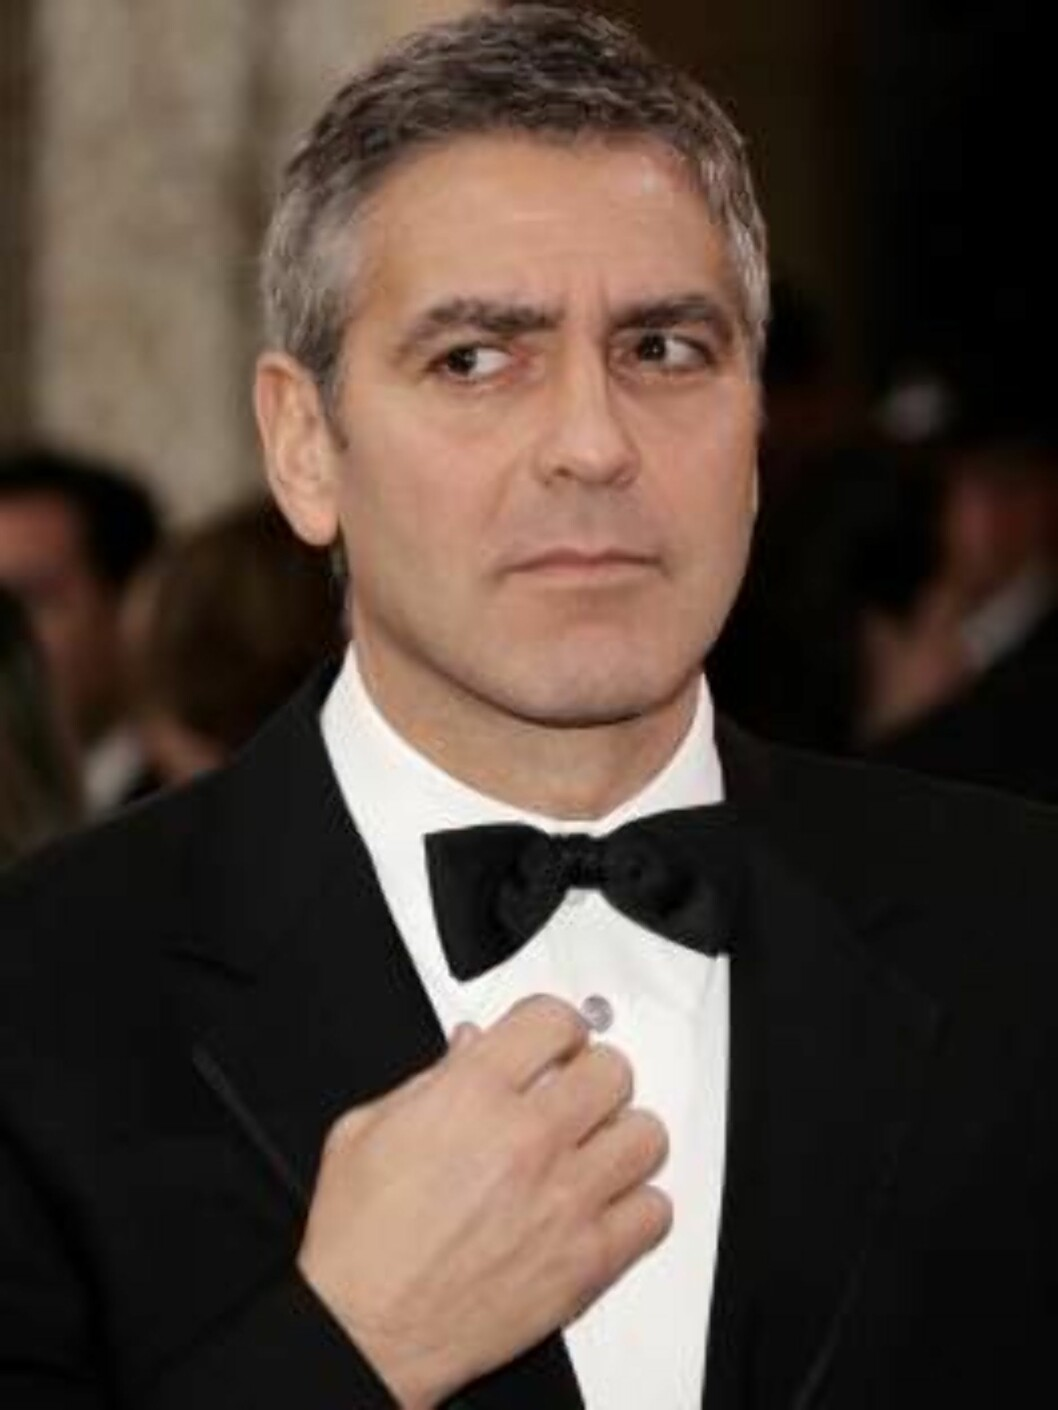 HOLLYWOOD - MARCH 05:  Oscar nominee George Clooney arrives at the 78th Annual Academy Awards at the Kodak Theatre on March 5, 2006 in Hollywood, California.  (Photo by Vince Bucci/Getty Images) *** Local Caption *** George Clooney  * SPECIAL INSTRUCTIONS Foto: All Over Press